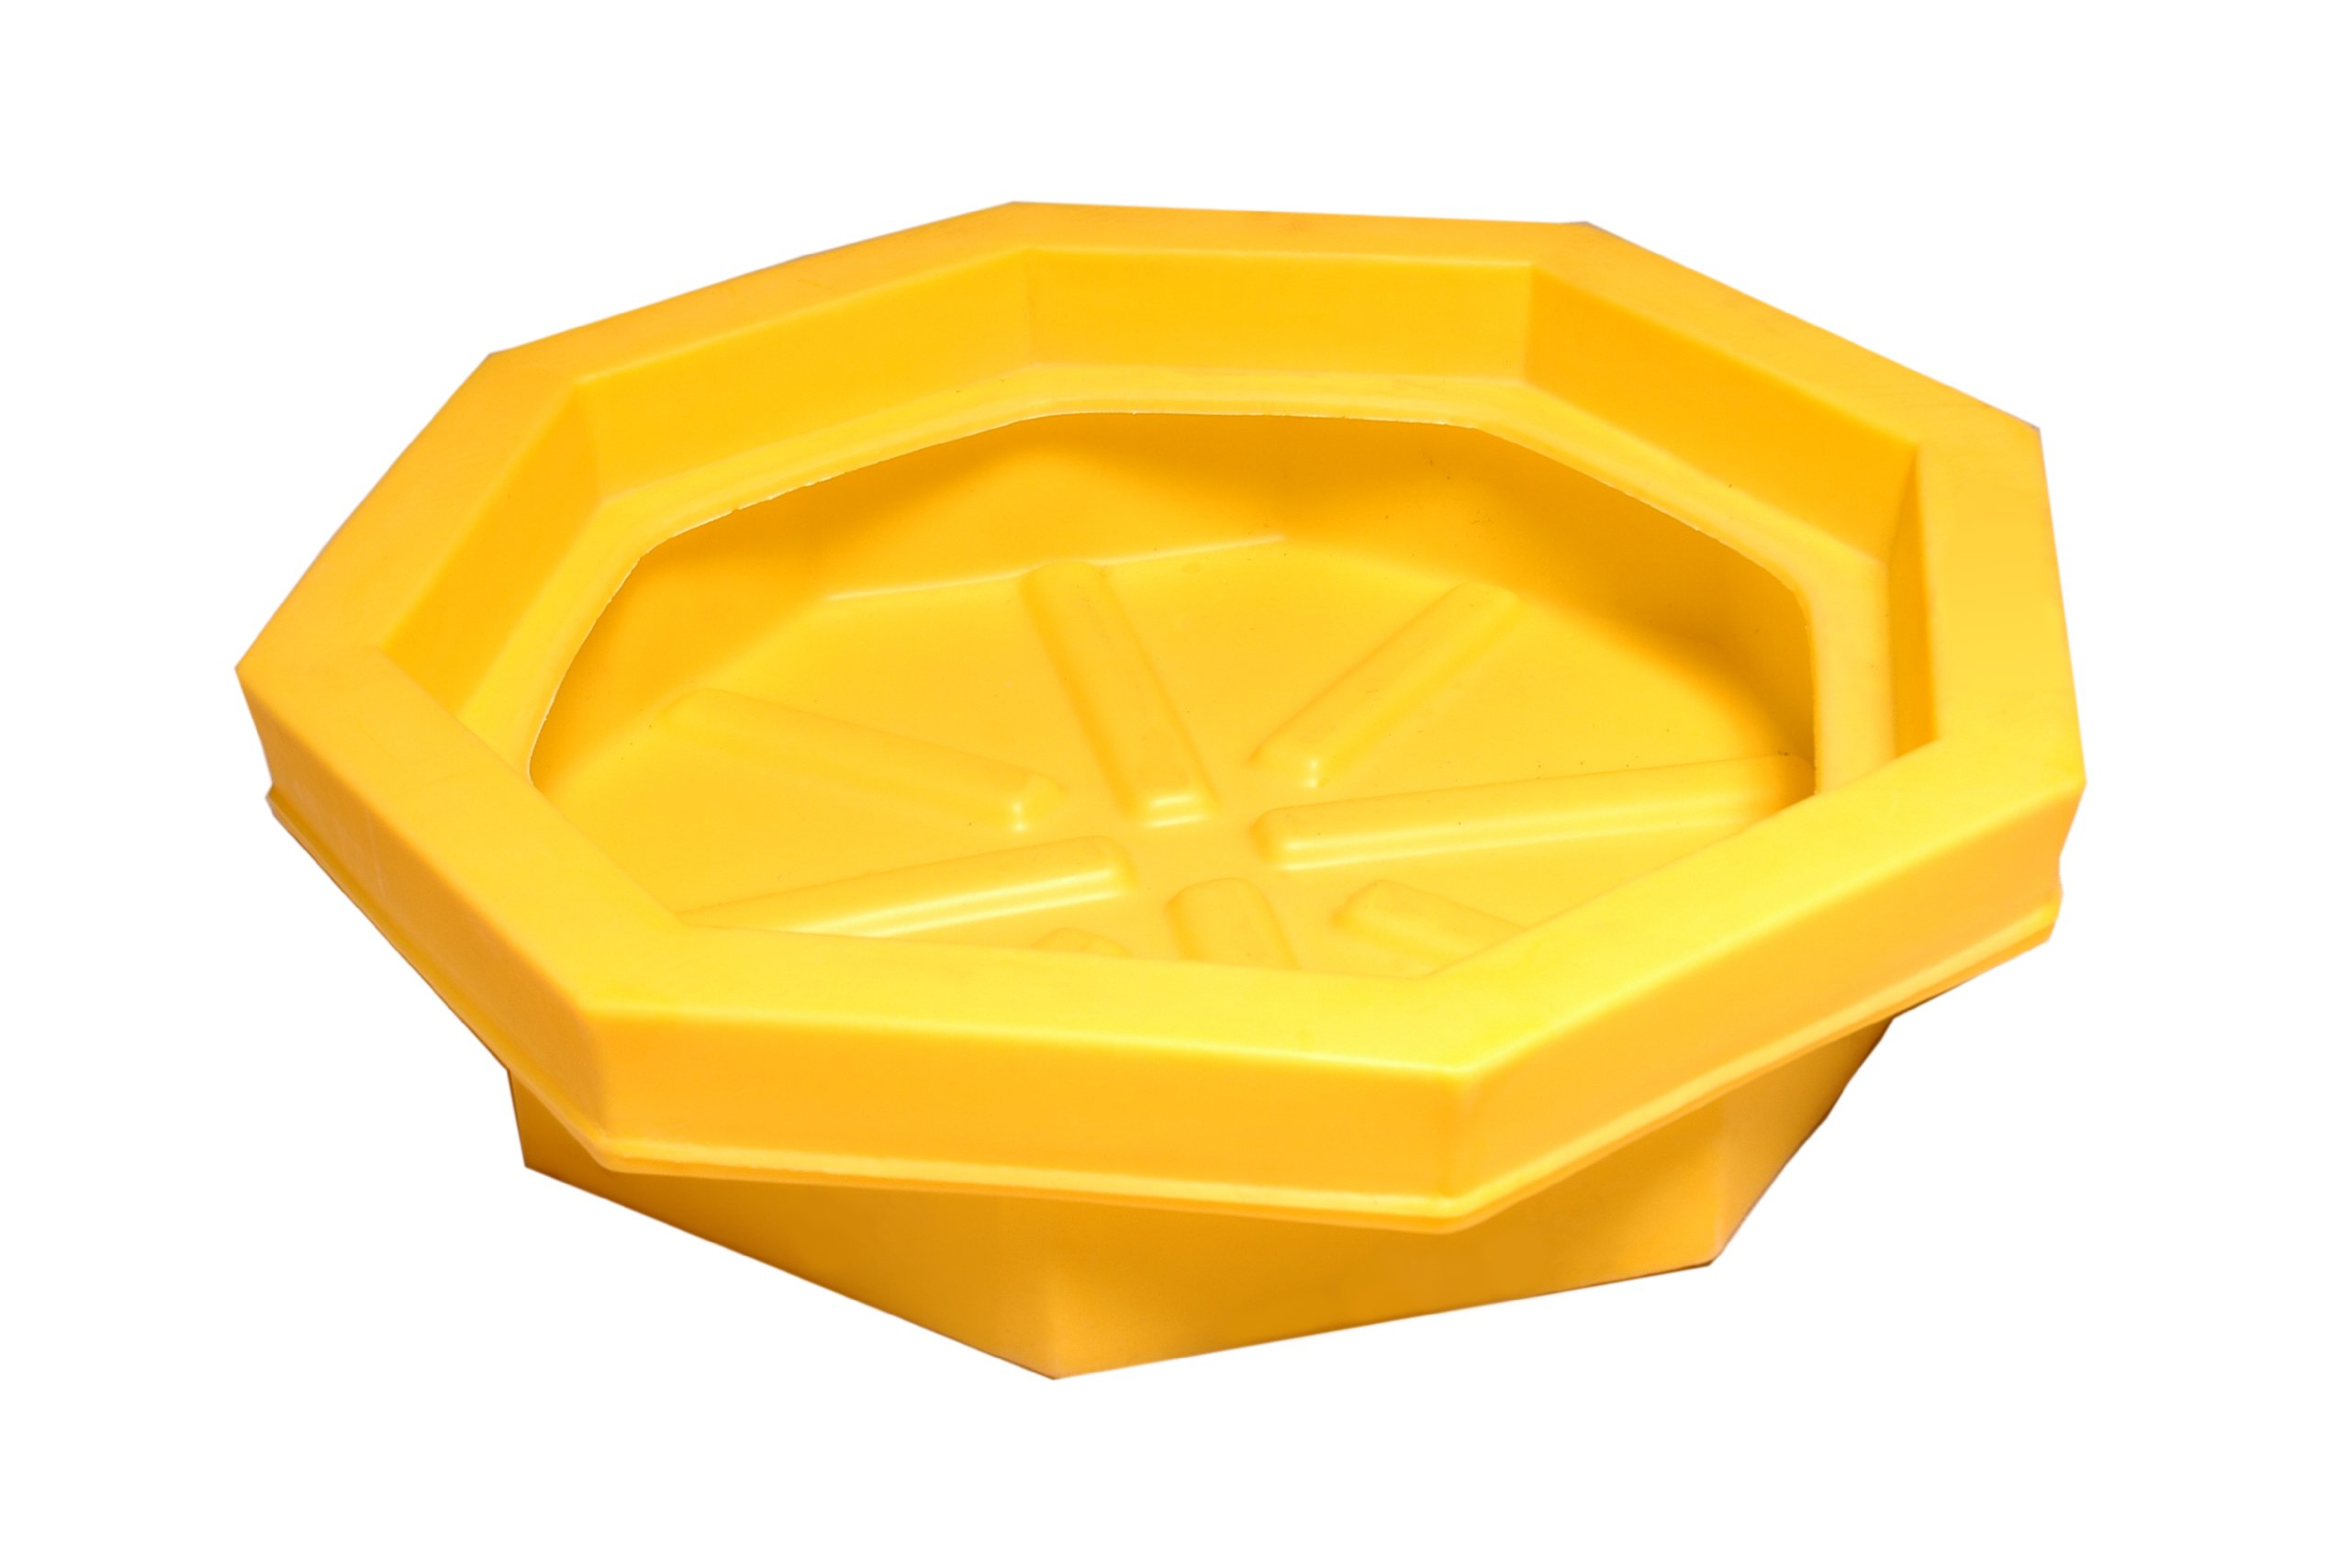 UltraTech 1045 Polyethylene Ultra-Drum Tray without Grate, 22.8 Gallon Capacity, 5 Year Warranty, Yellow